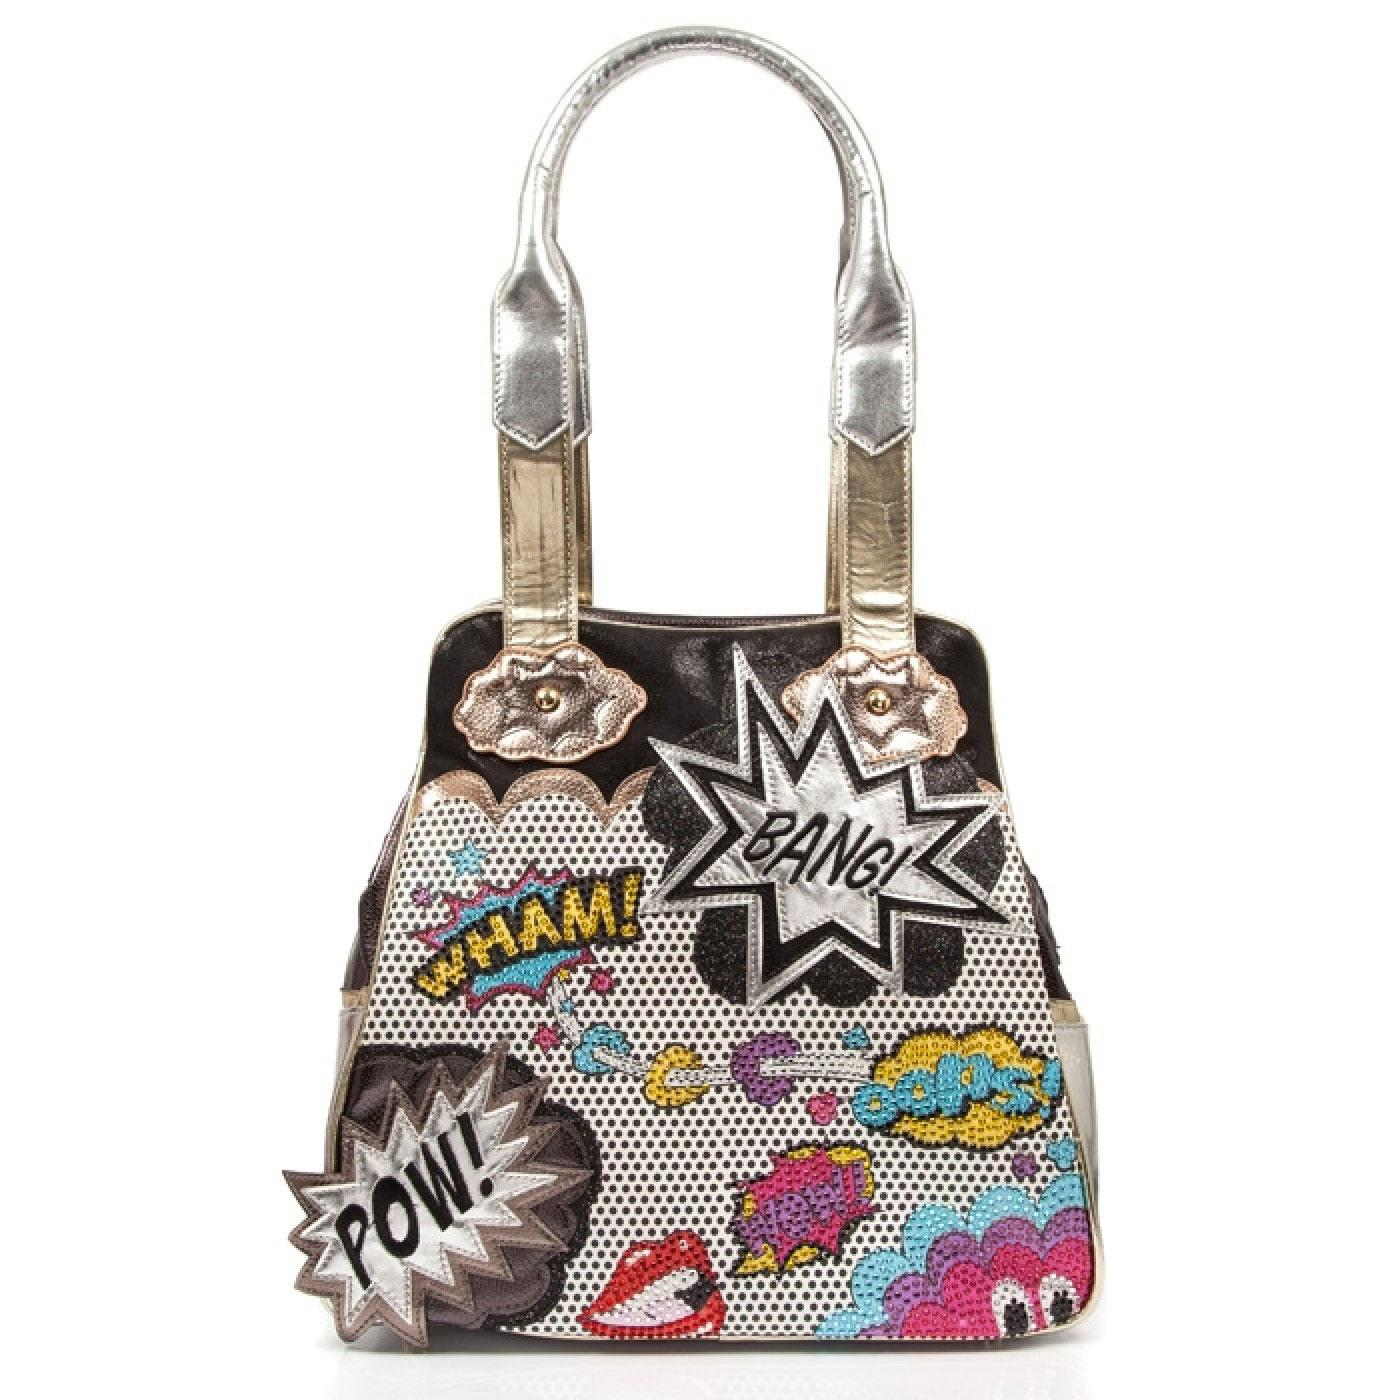 Wham! Bang! Pow! IRREGULAR CHOICE Handbag